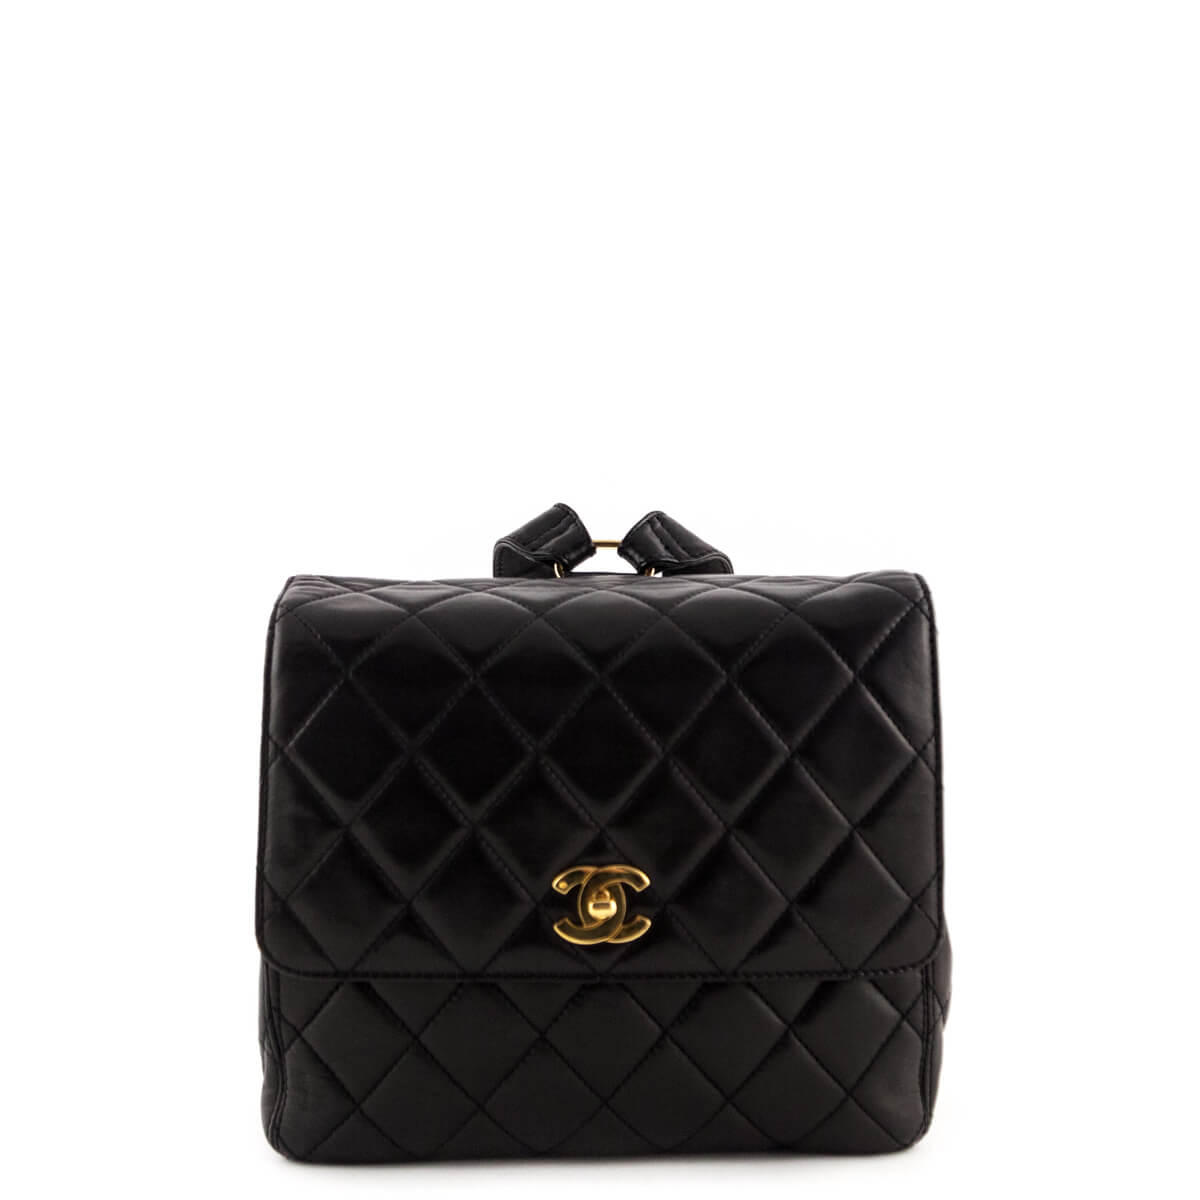 a44c0f10d941 Chanel Black Quilted Lambskin Vintage Backpack - LOVE that BAG - Preowned  Authentic Designer Handbags ...